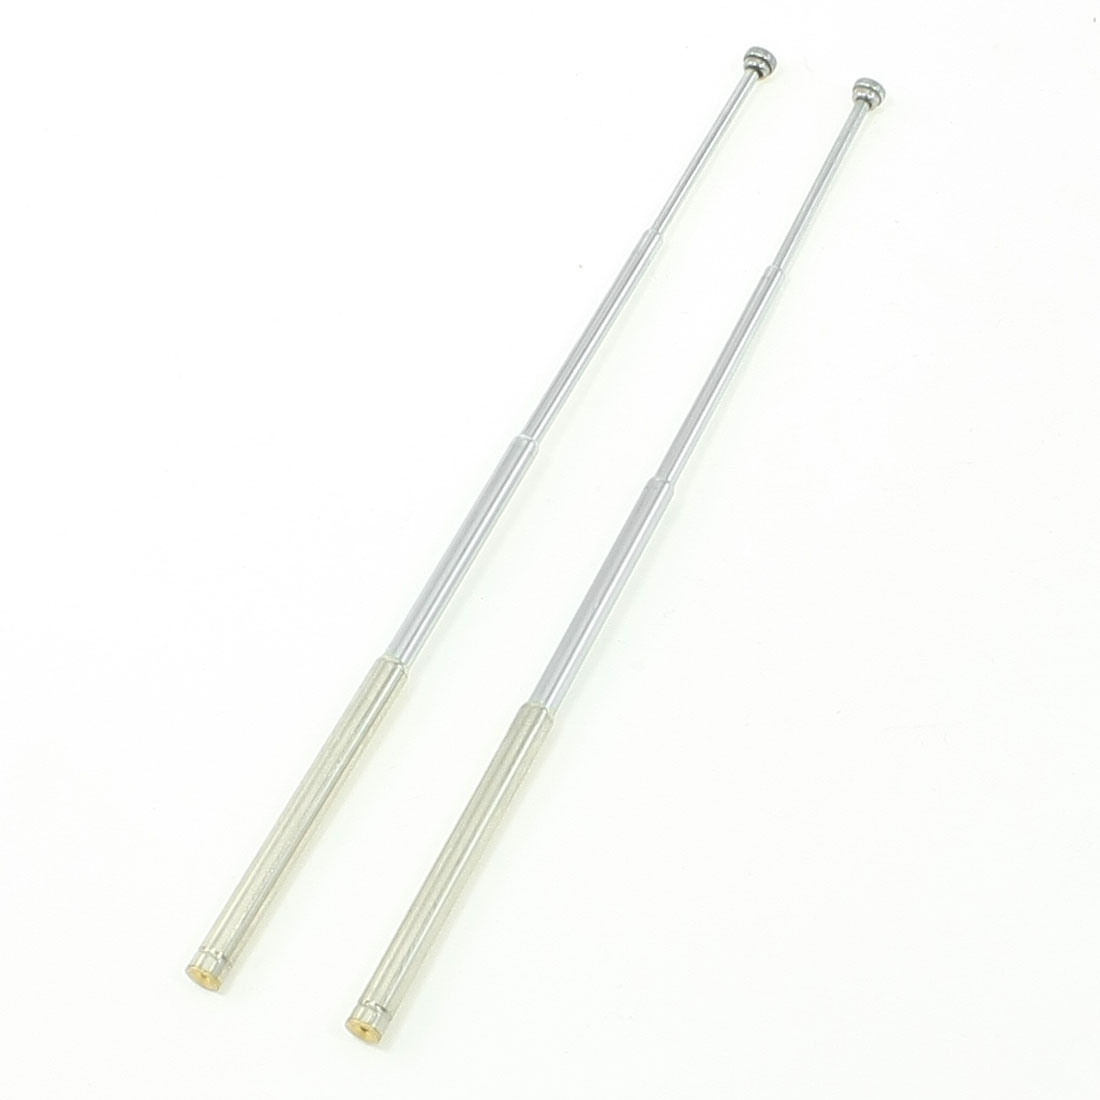 5.5 inches 4 Section Telescopic Antenna Whip Ham Radio RC Radio Control Pair